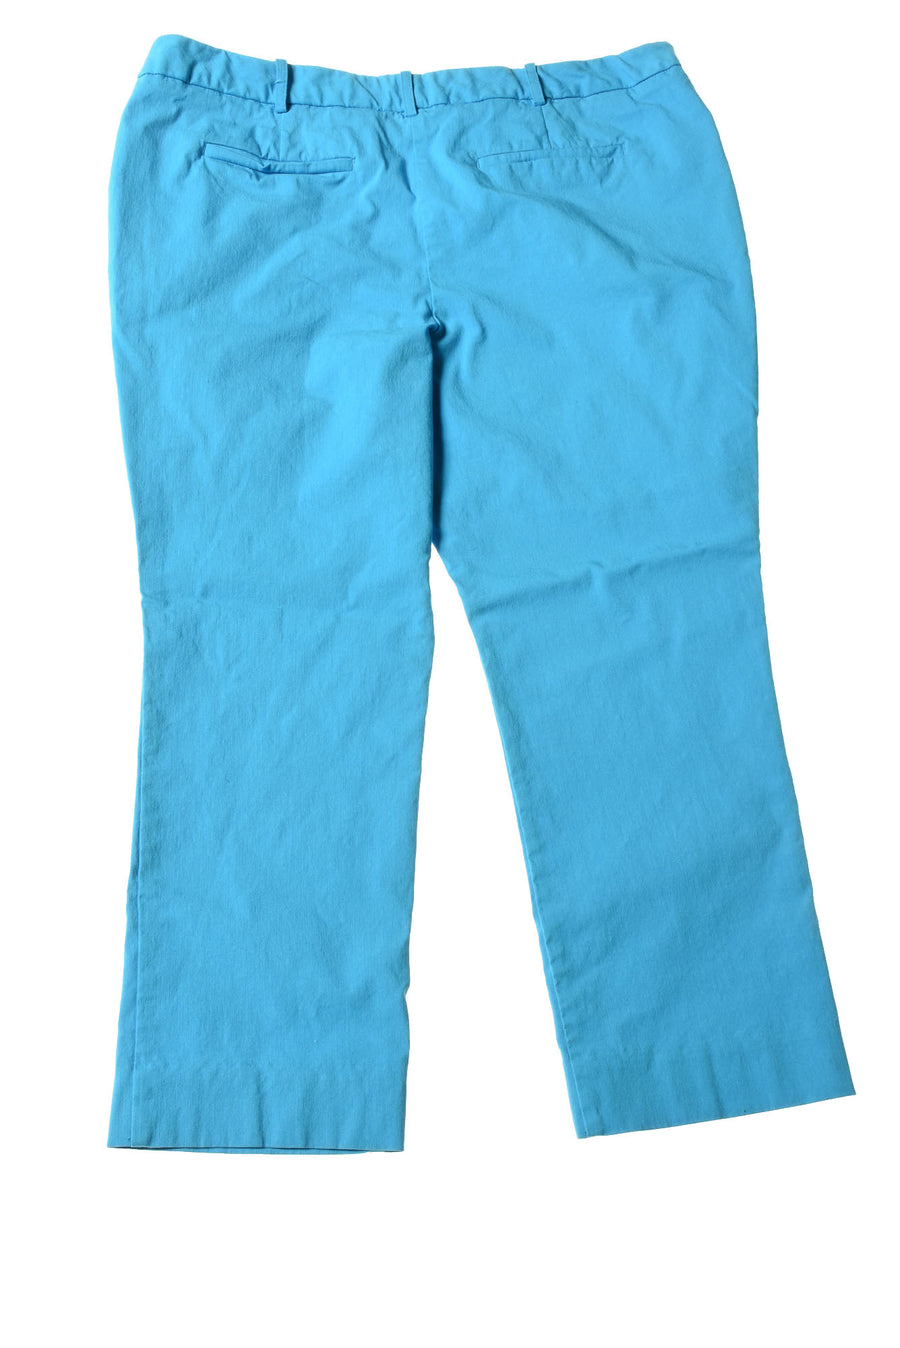 USED  Worthington Women's Shorts 14 Blue